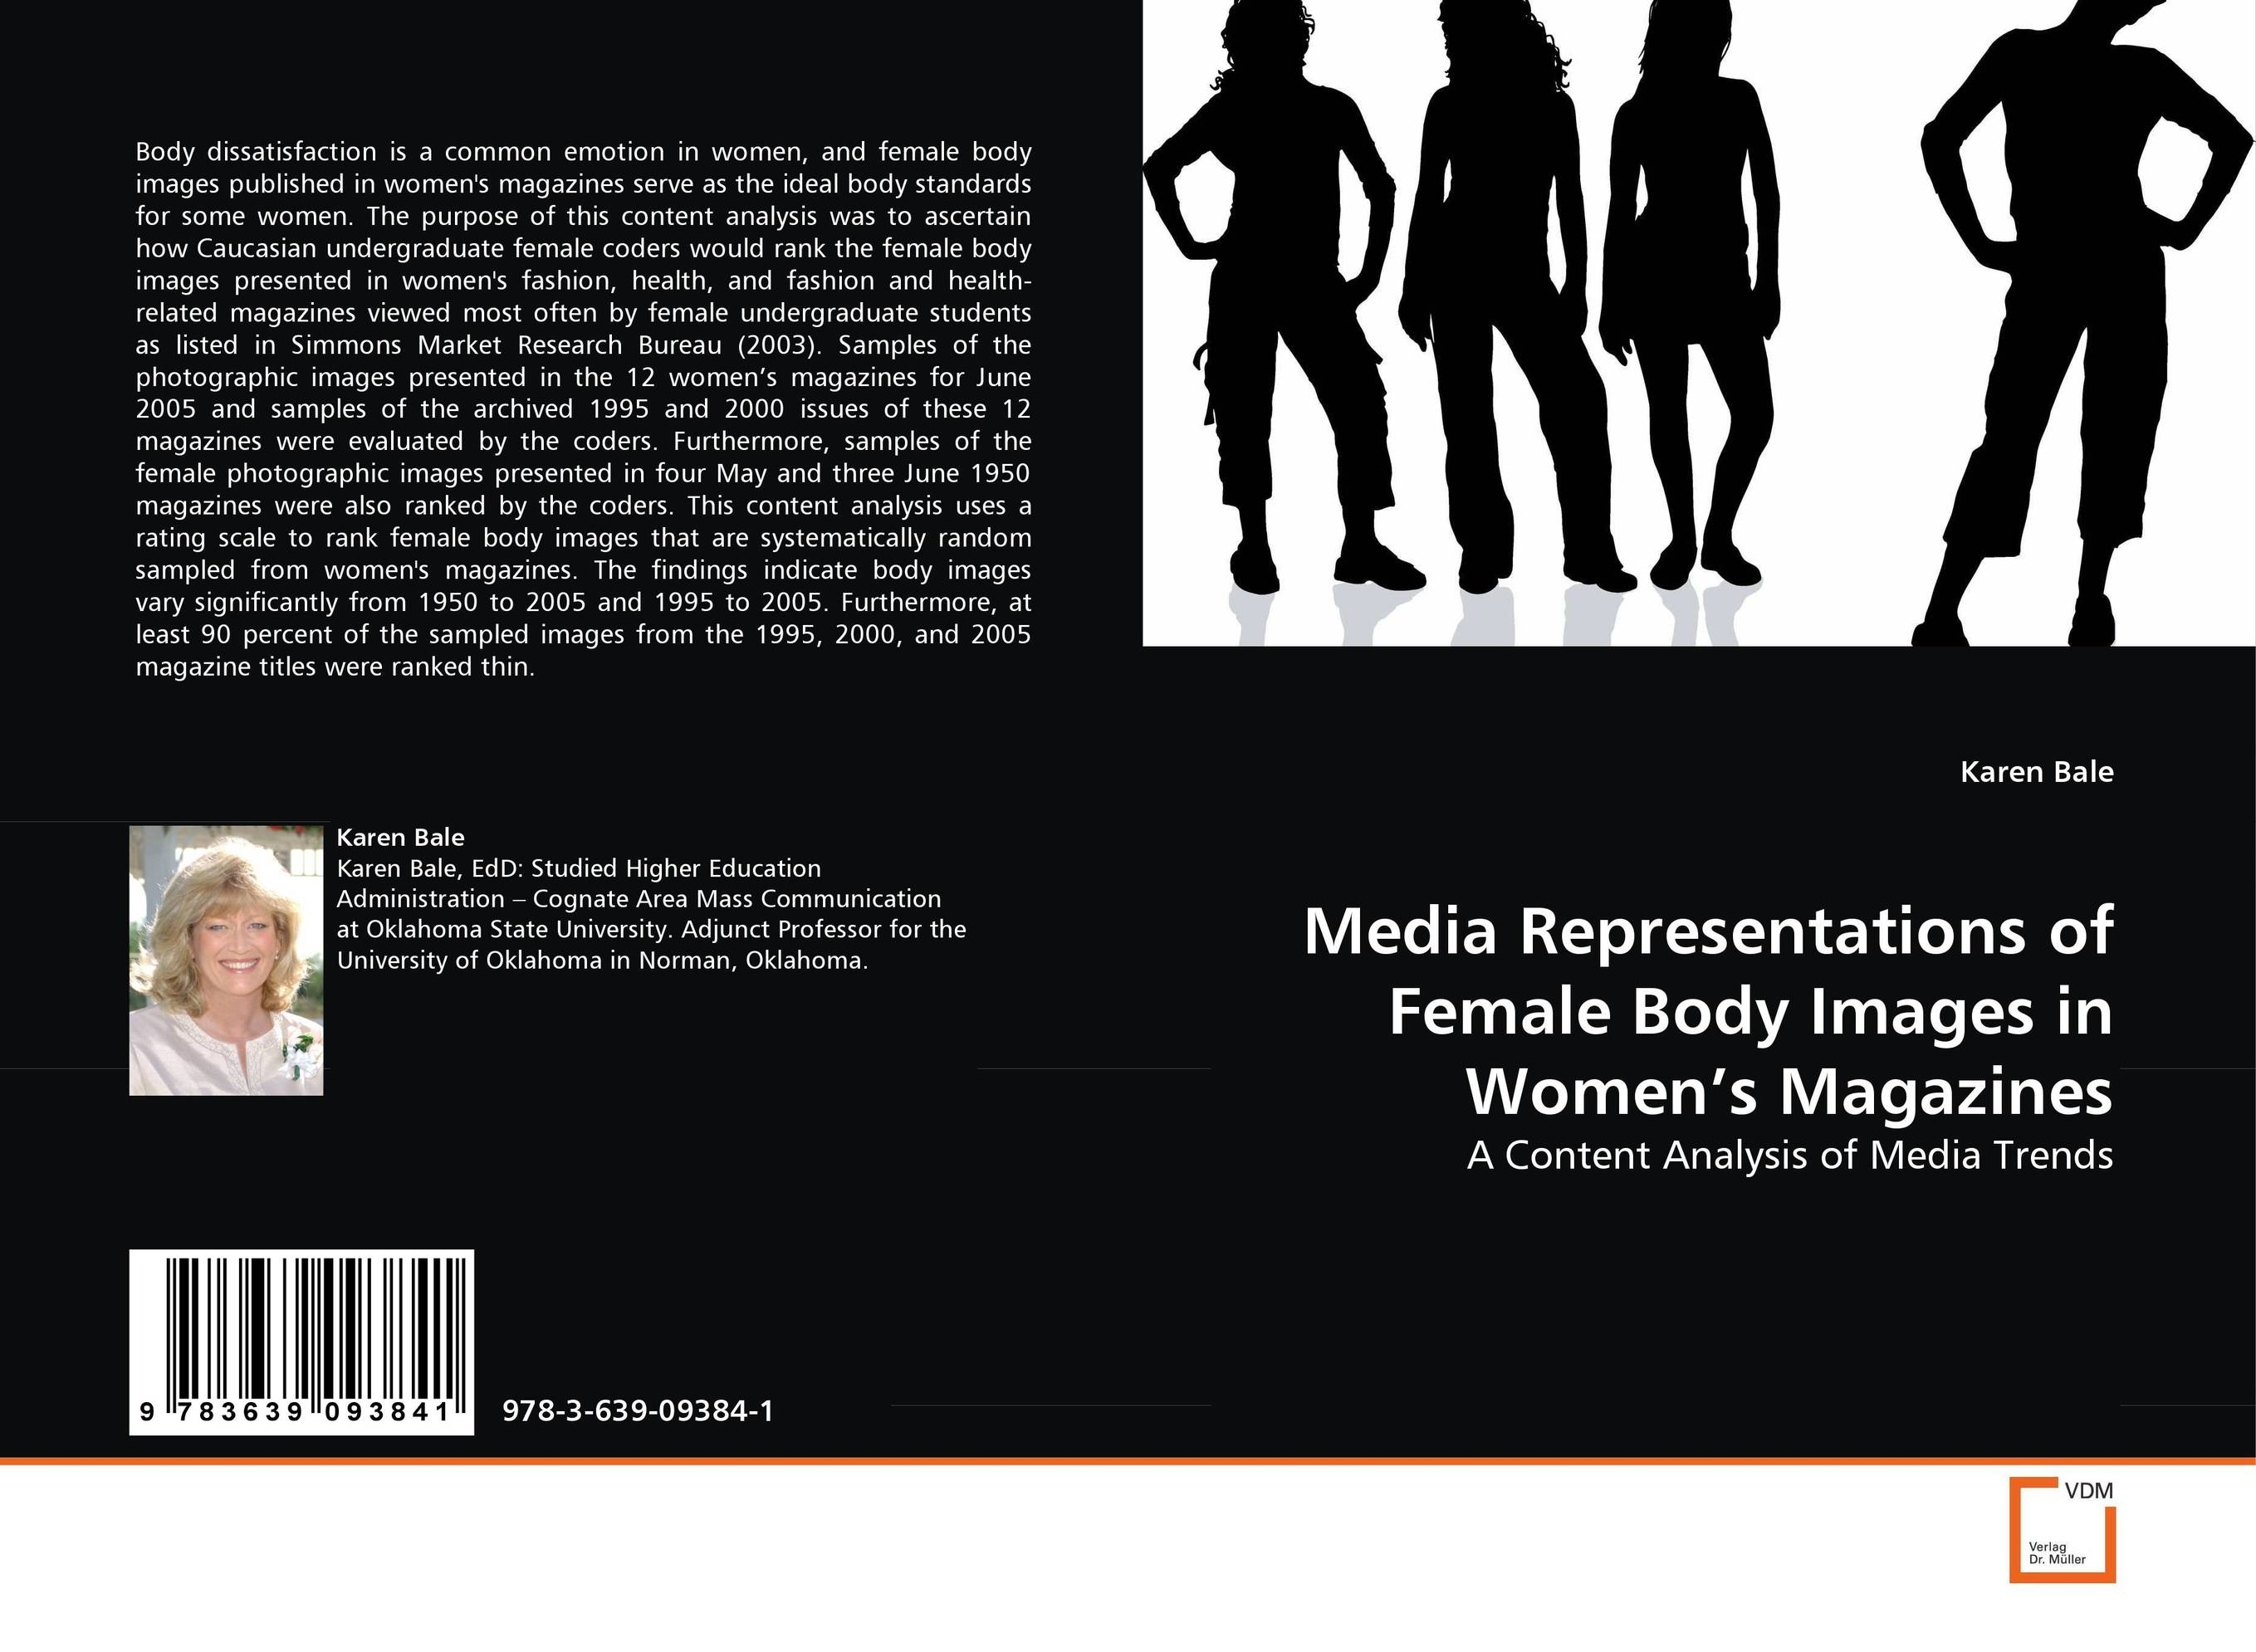 Media Representations of Female Body Images in Women''s Magazines